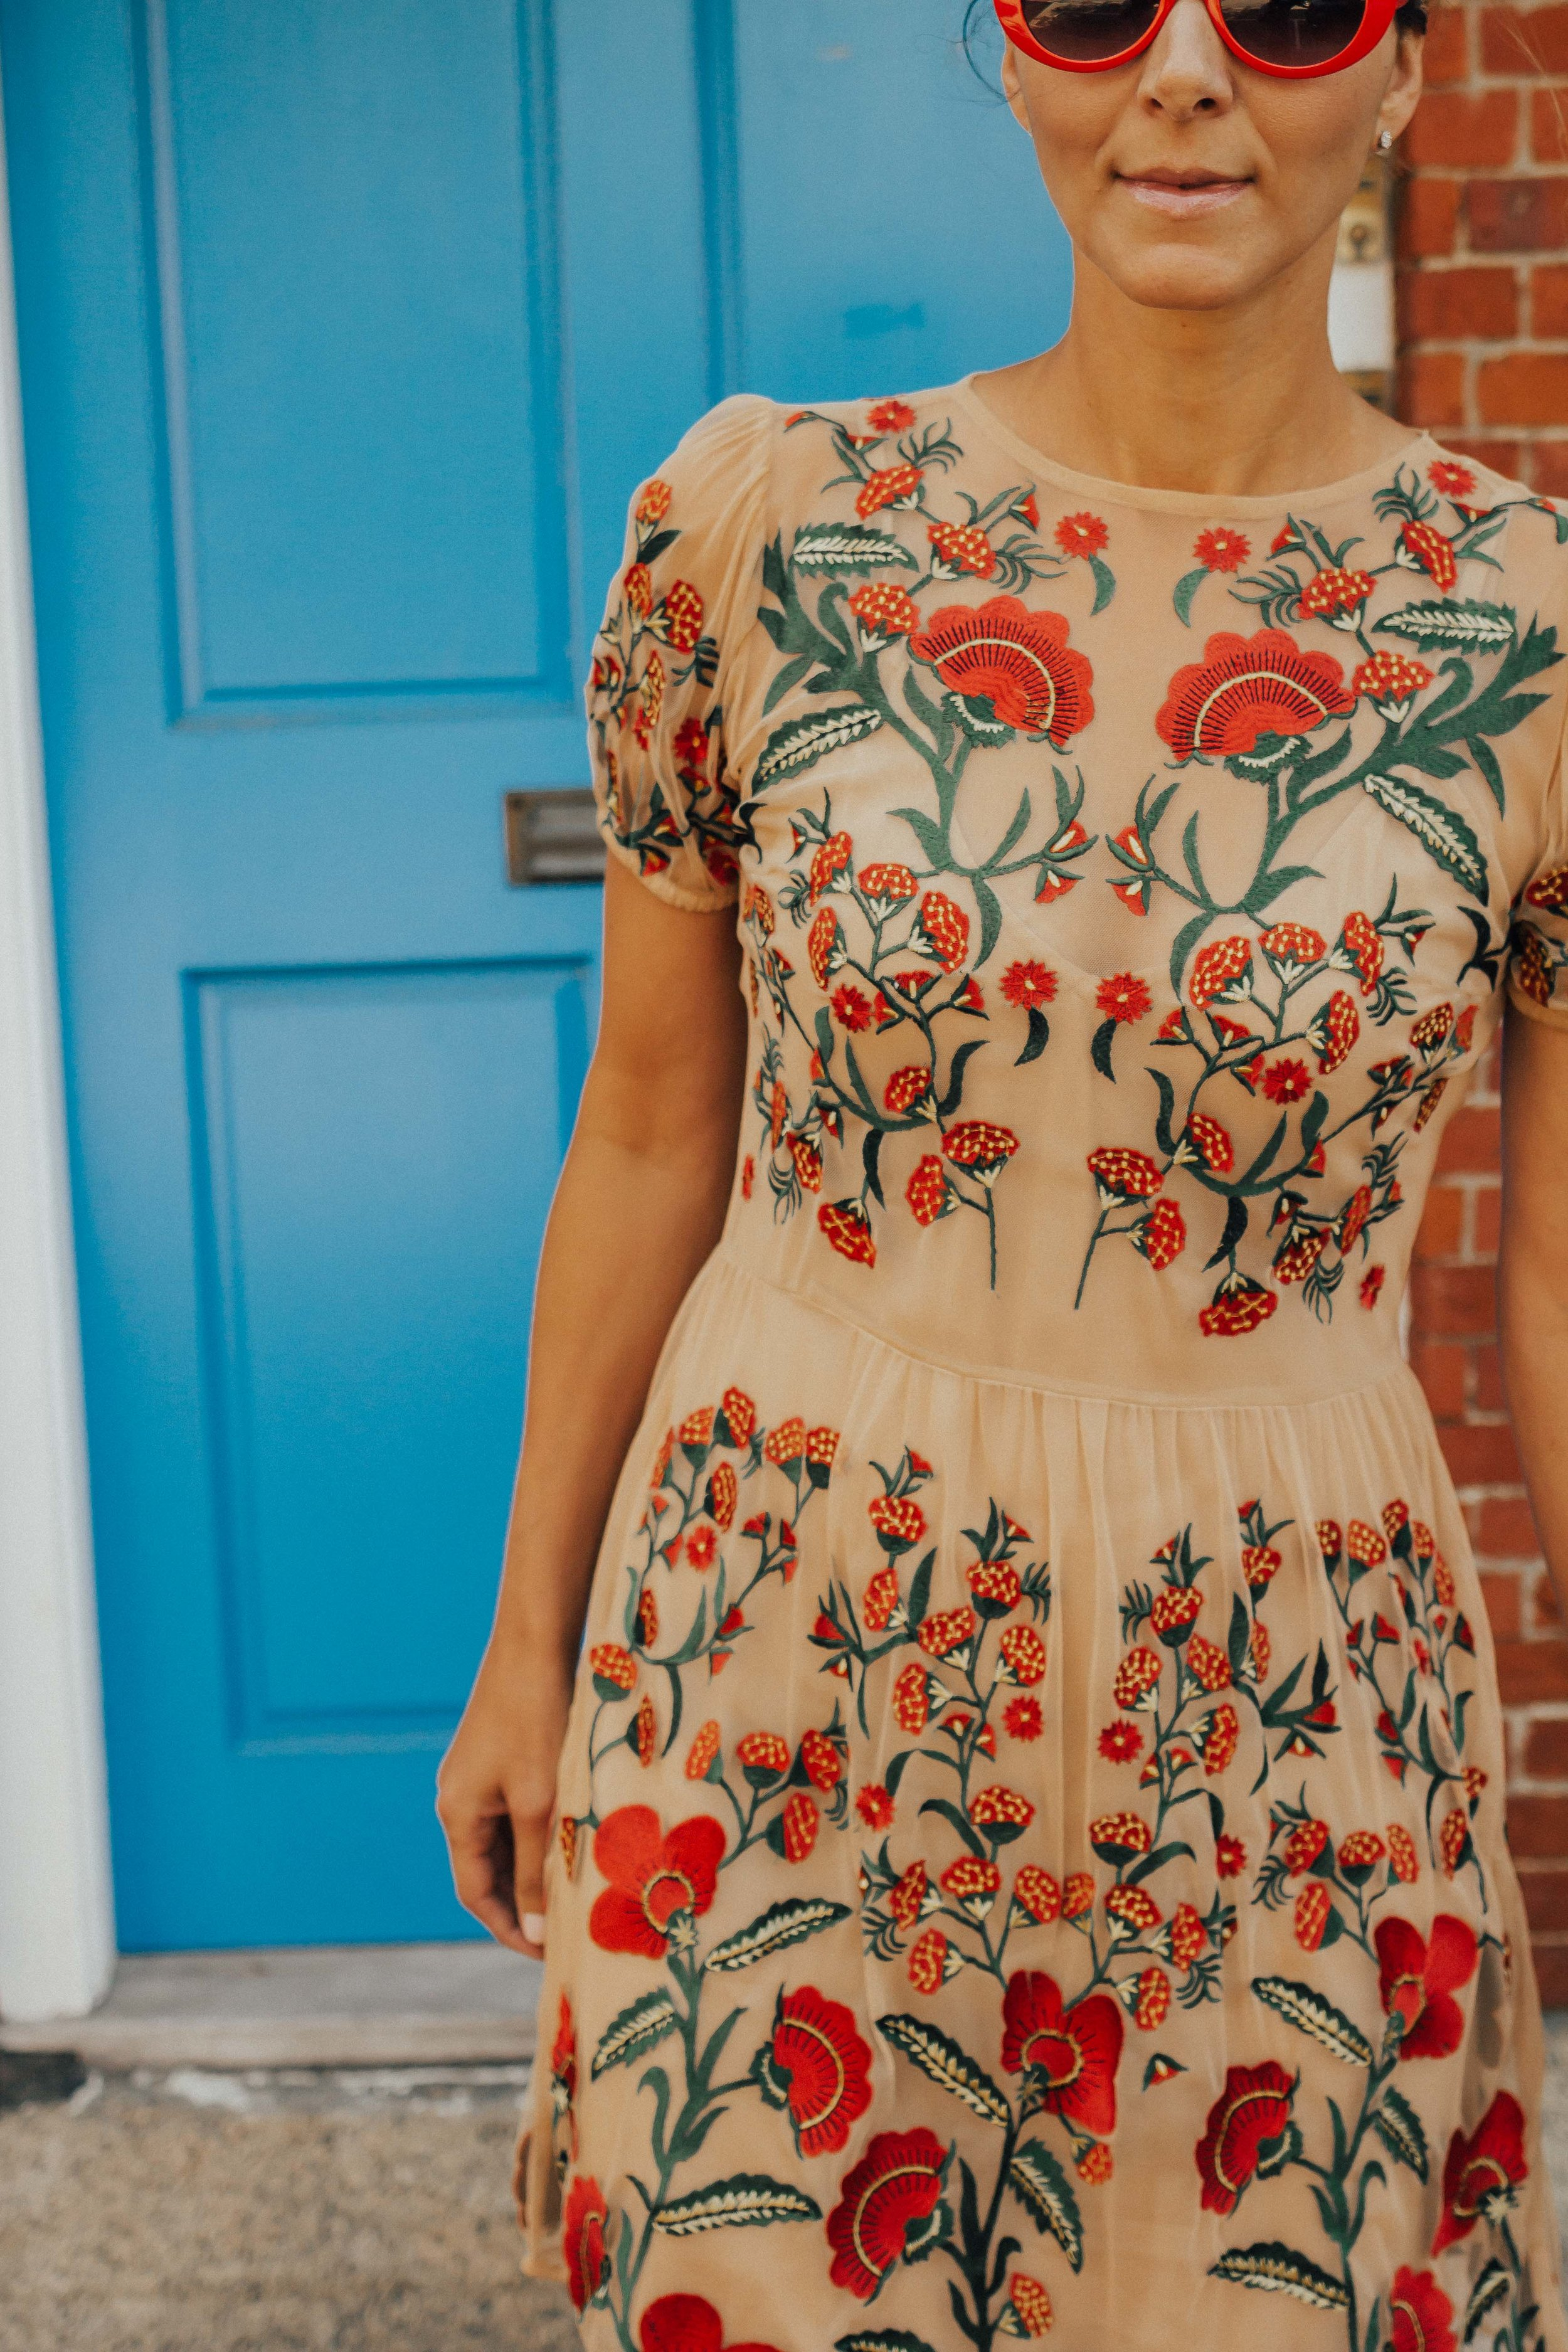 Nude Dresses – Holiday Dresses – Embroidered Dresses – Tulle Dresses – Floral Dresses - Cocktail Party Dresses – Wedding Guest Dresses #heartandseam #Dra www.heartandseam.com